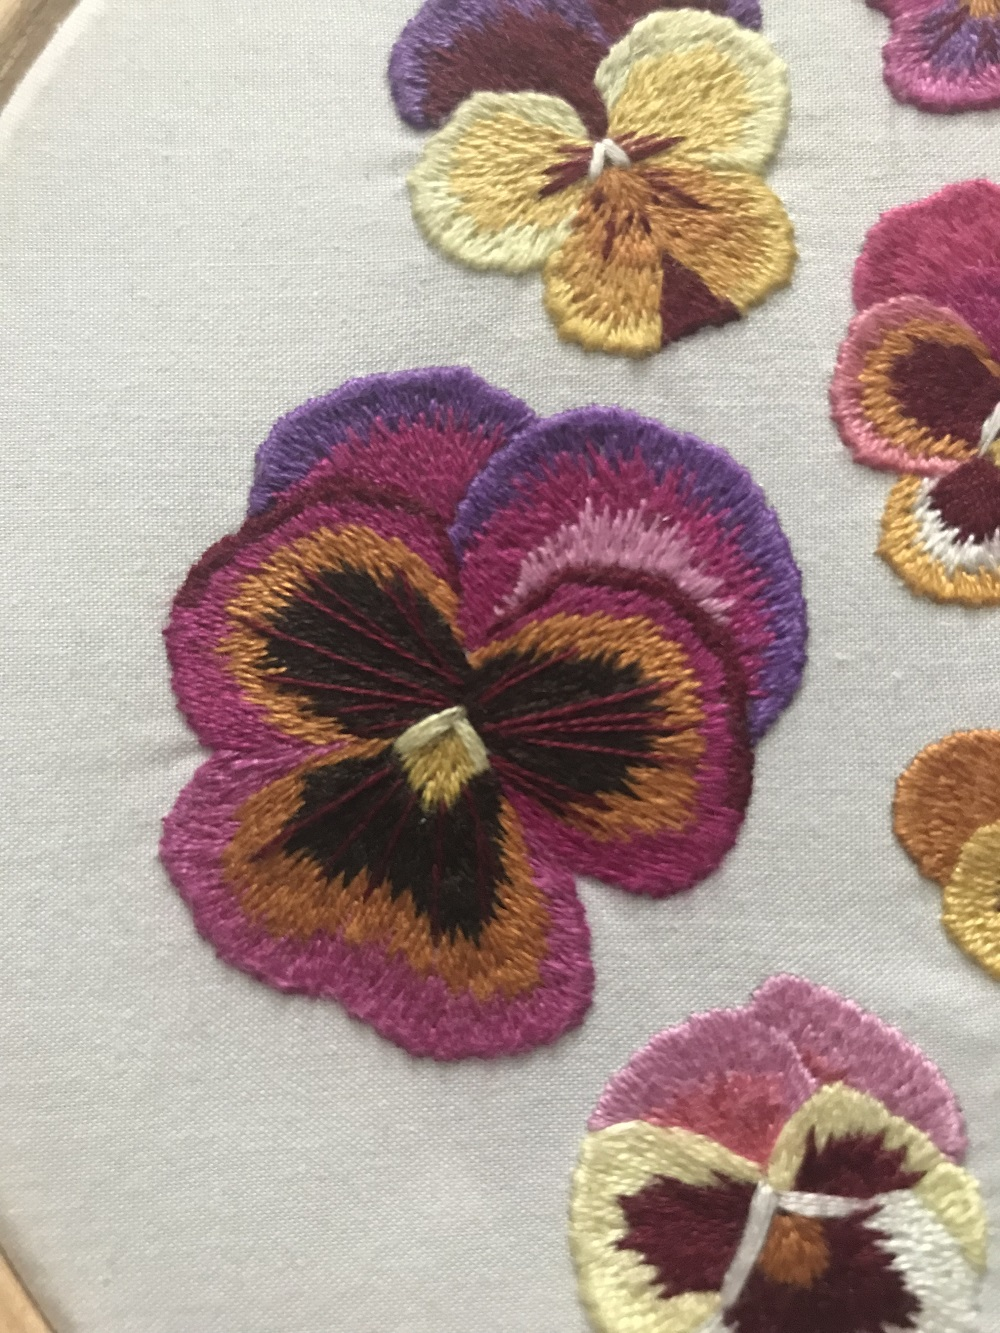 Pansy embroidery hoop art created through thread painting.jpg